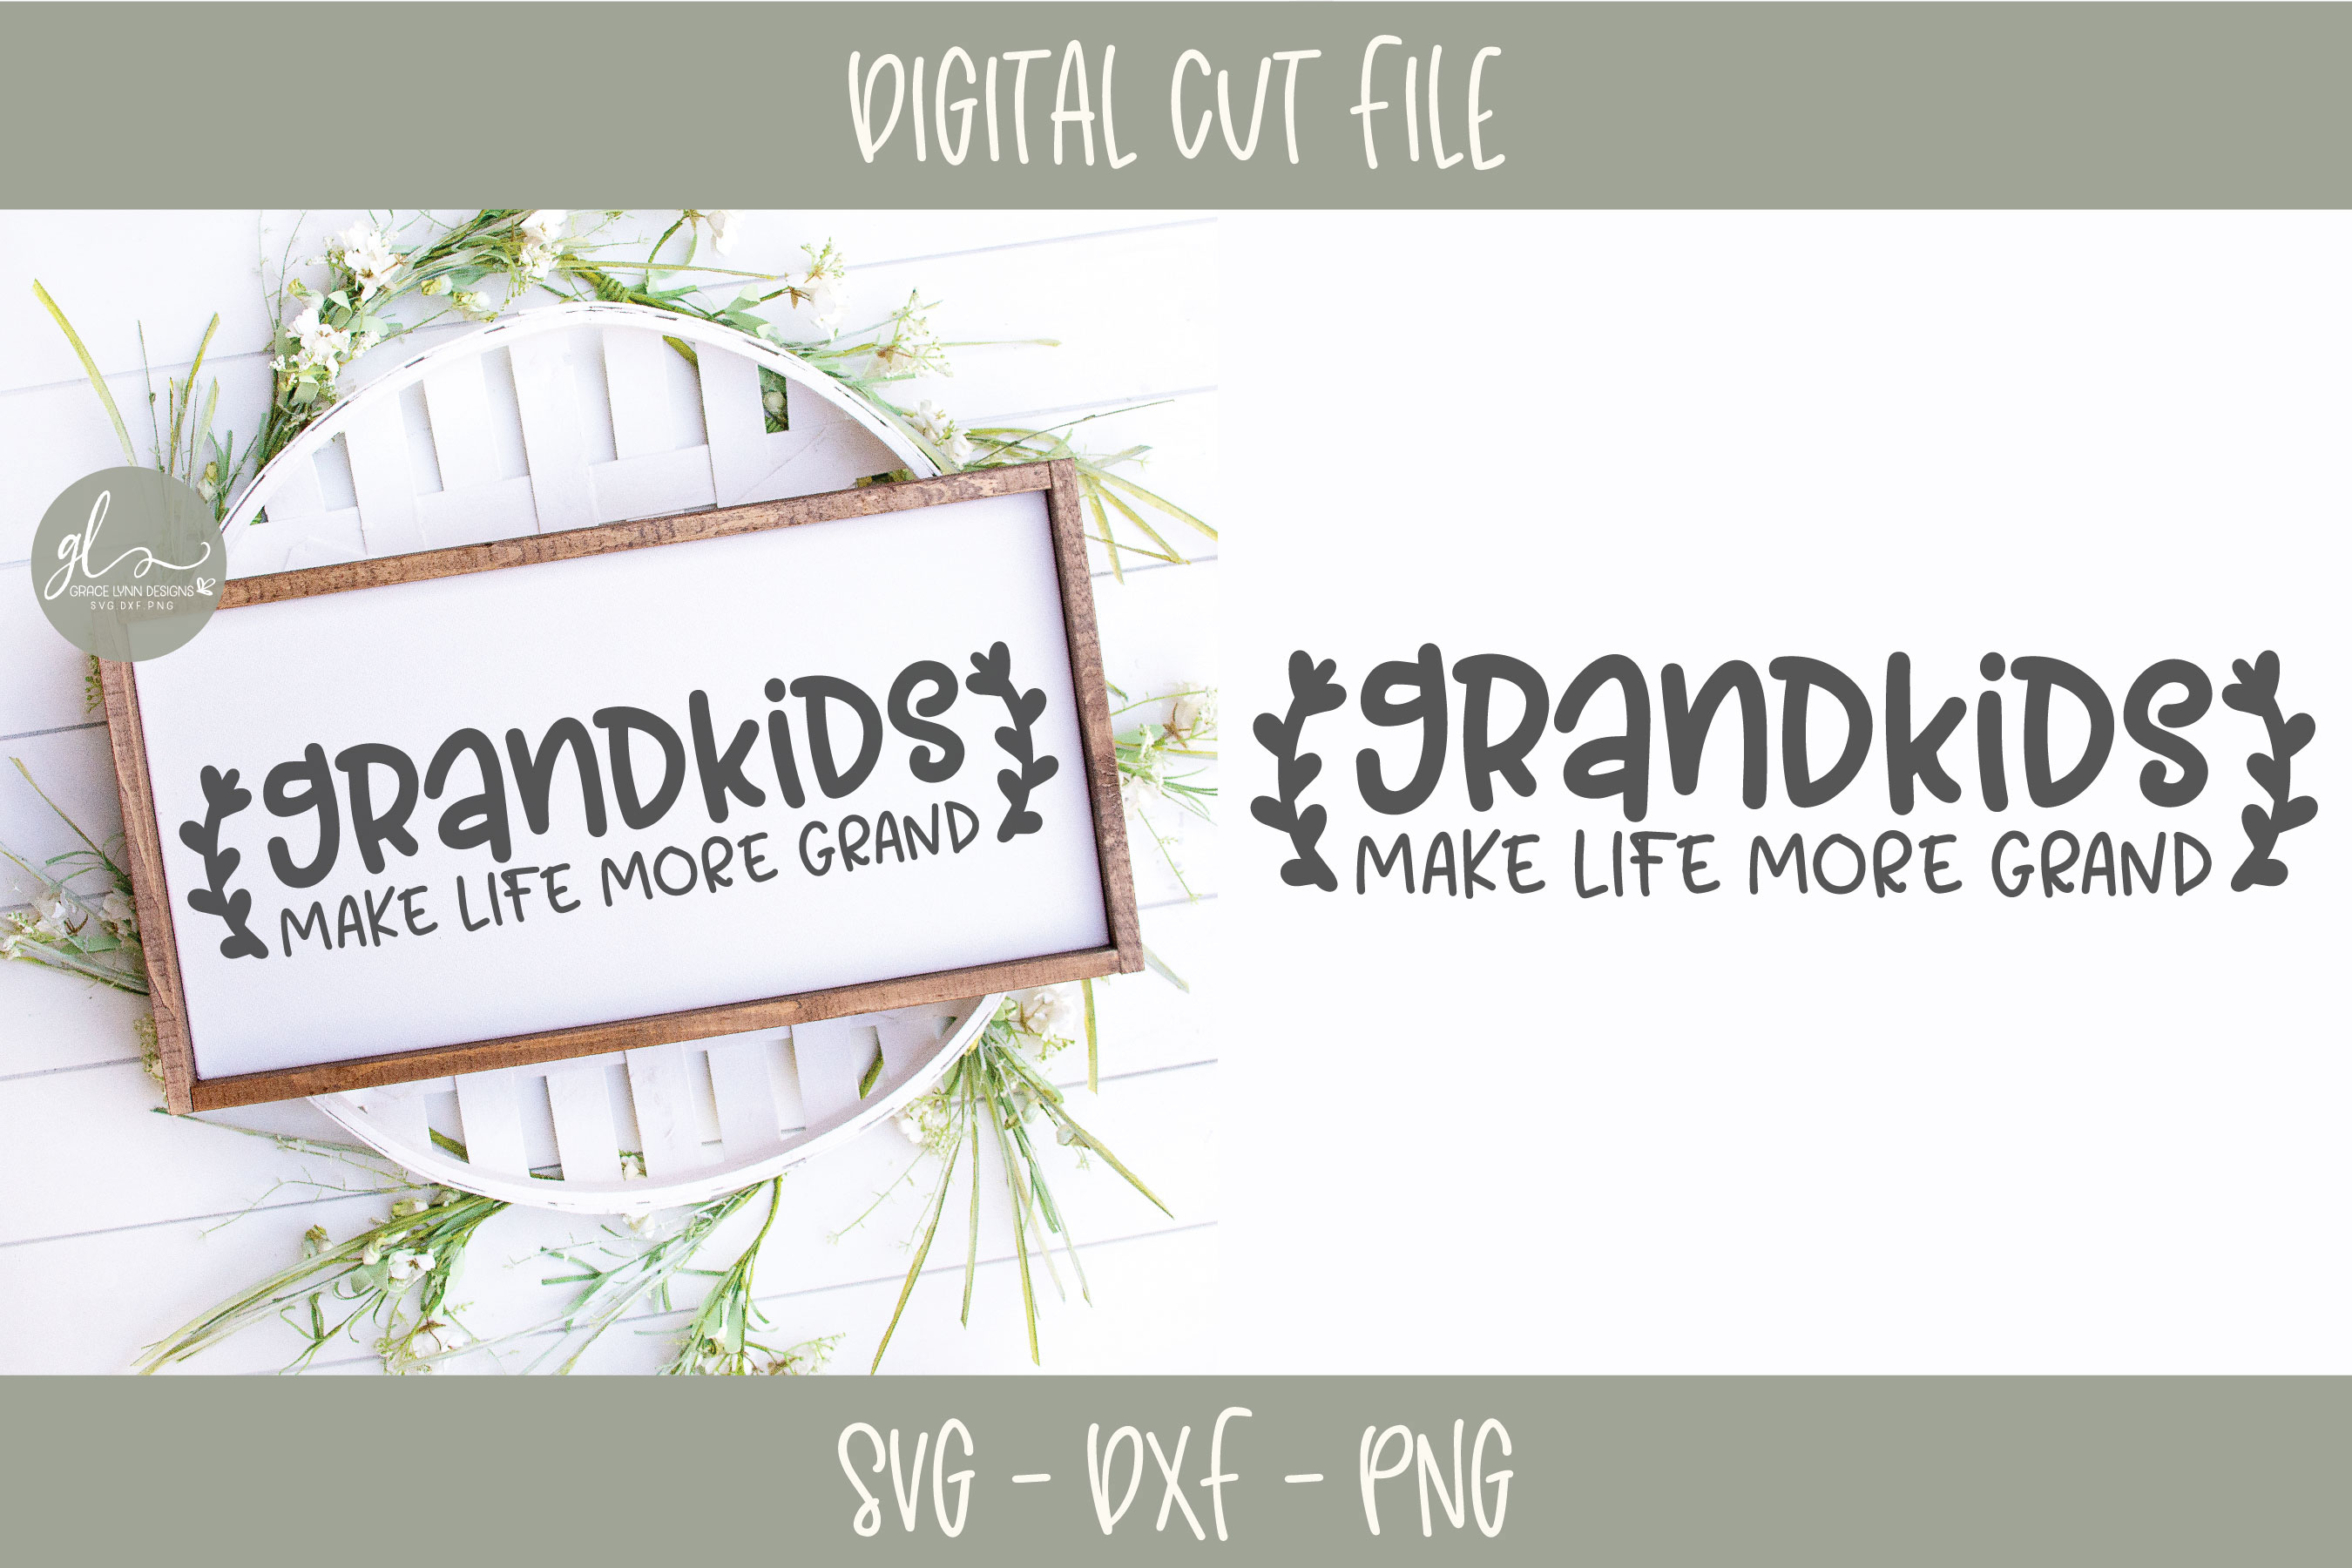 Grandkids Make Life More Grand - SVG Cut File example image 2